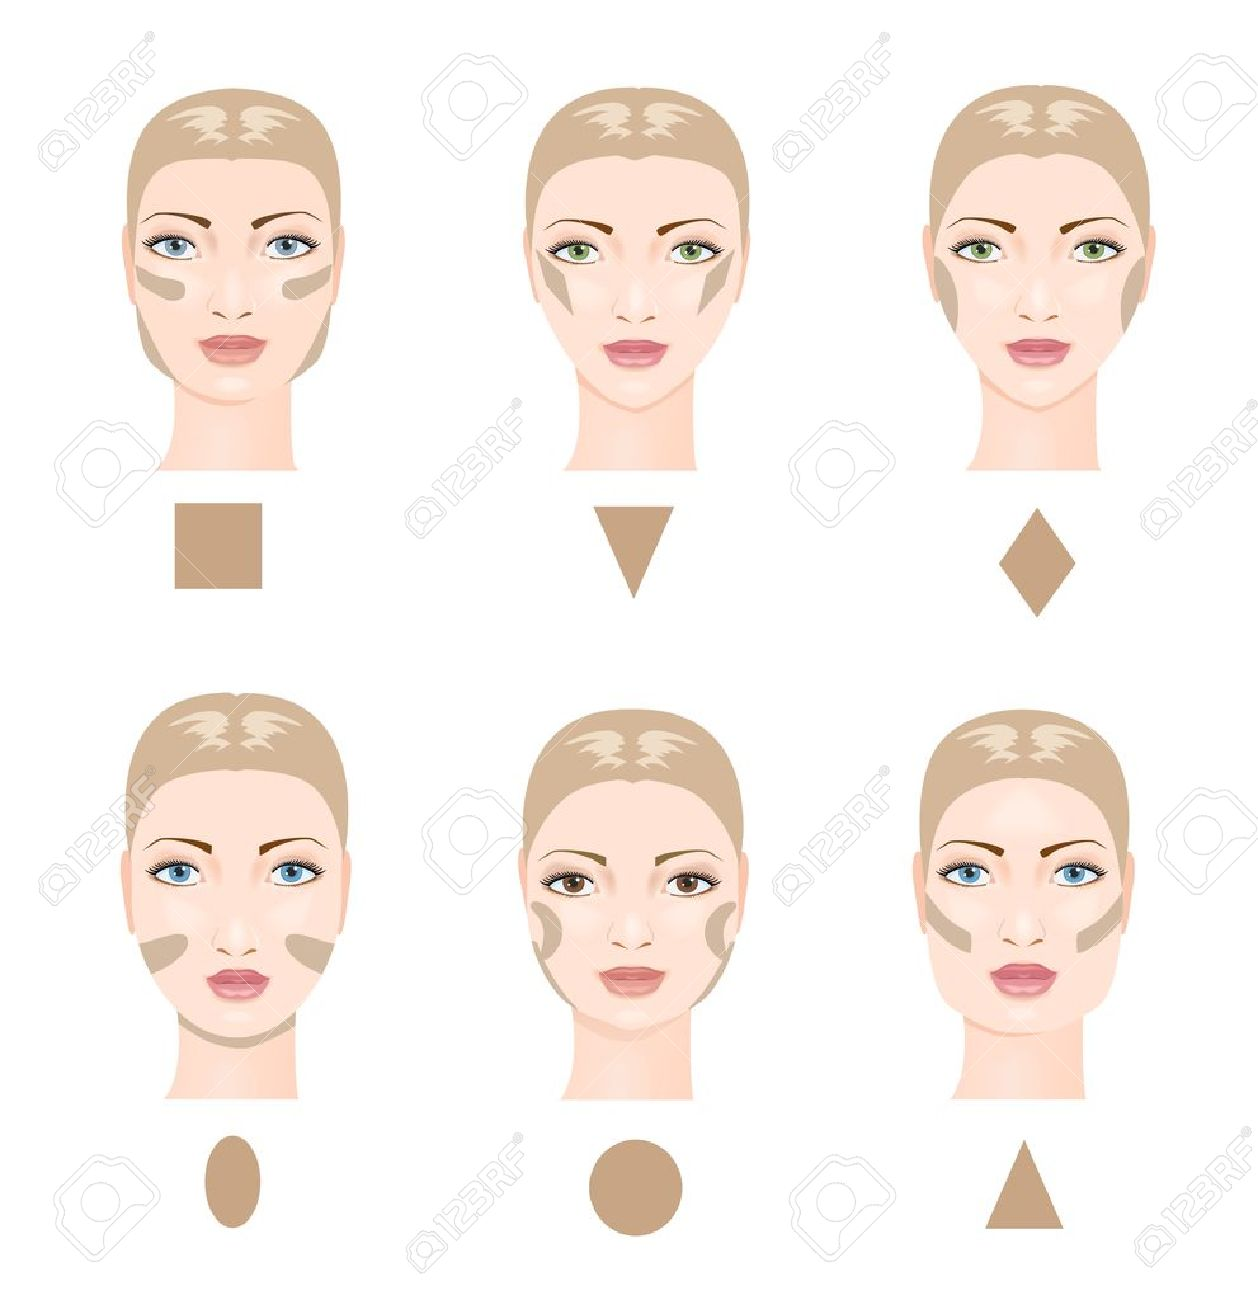 How To Contour Face Six Face Shapes Vector Illustration Stock Vector  45100270 How To Contour Face